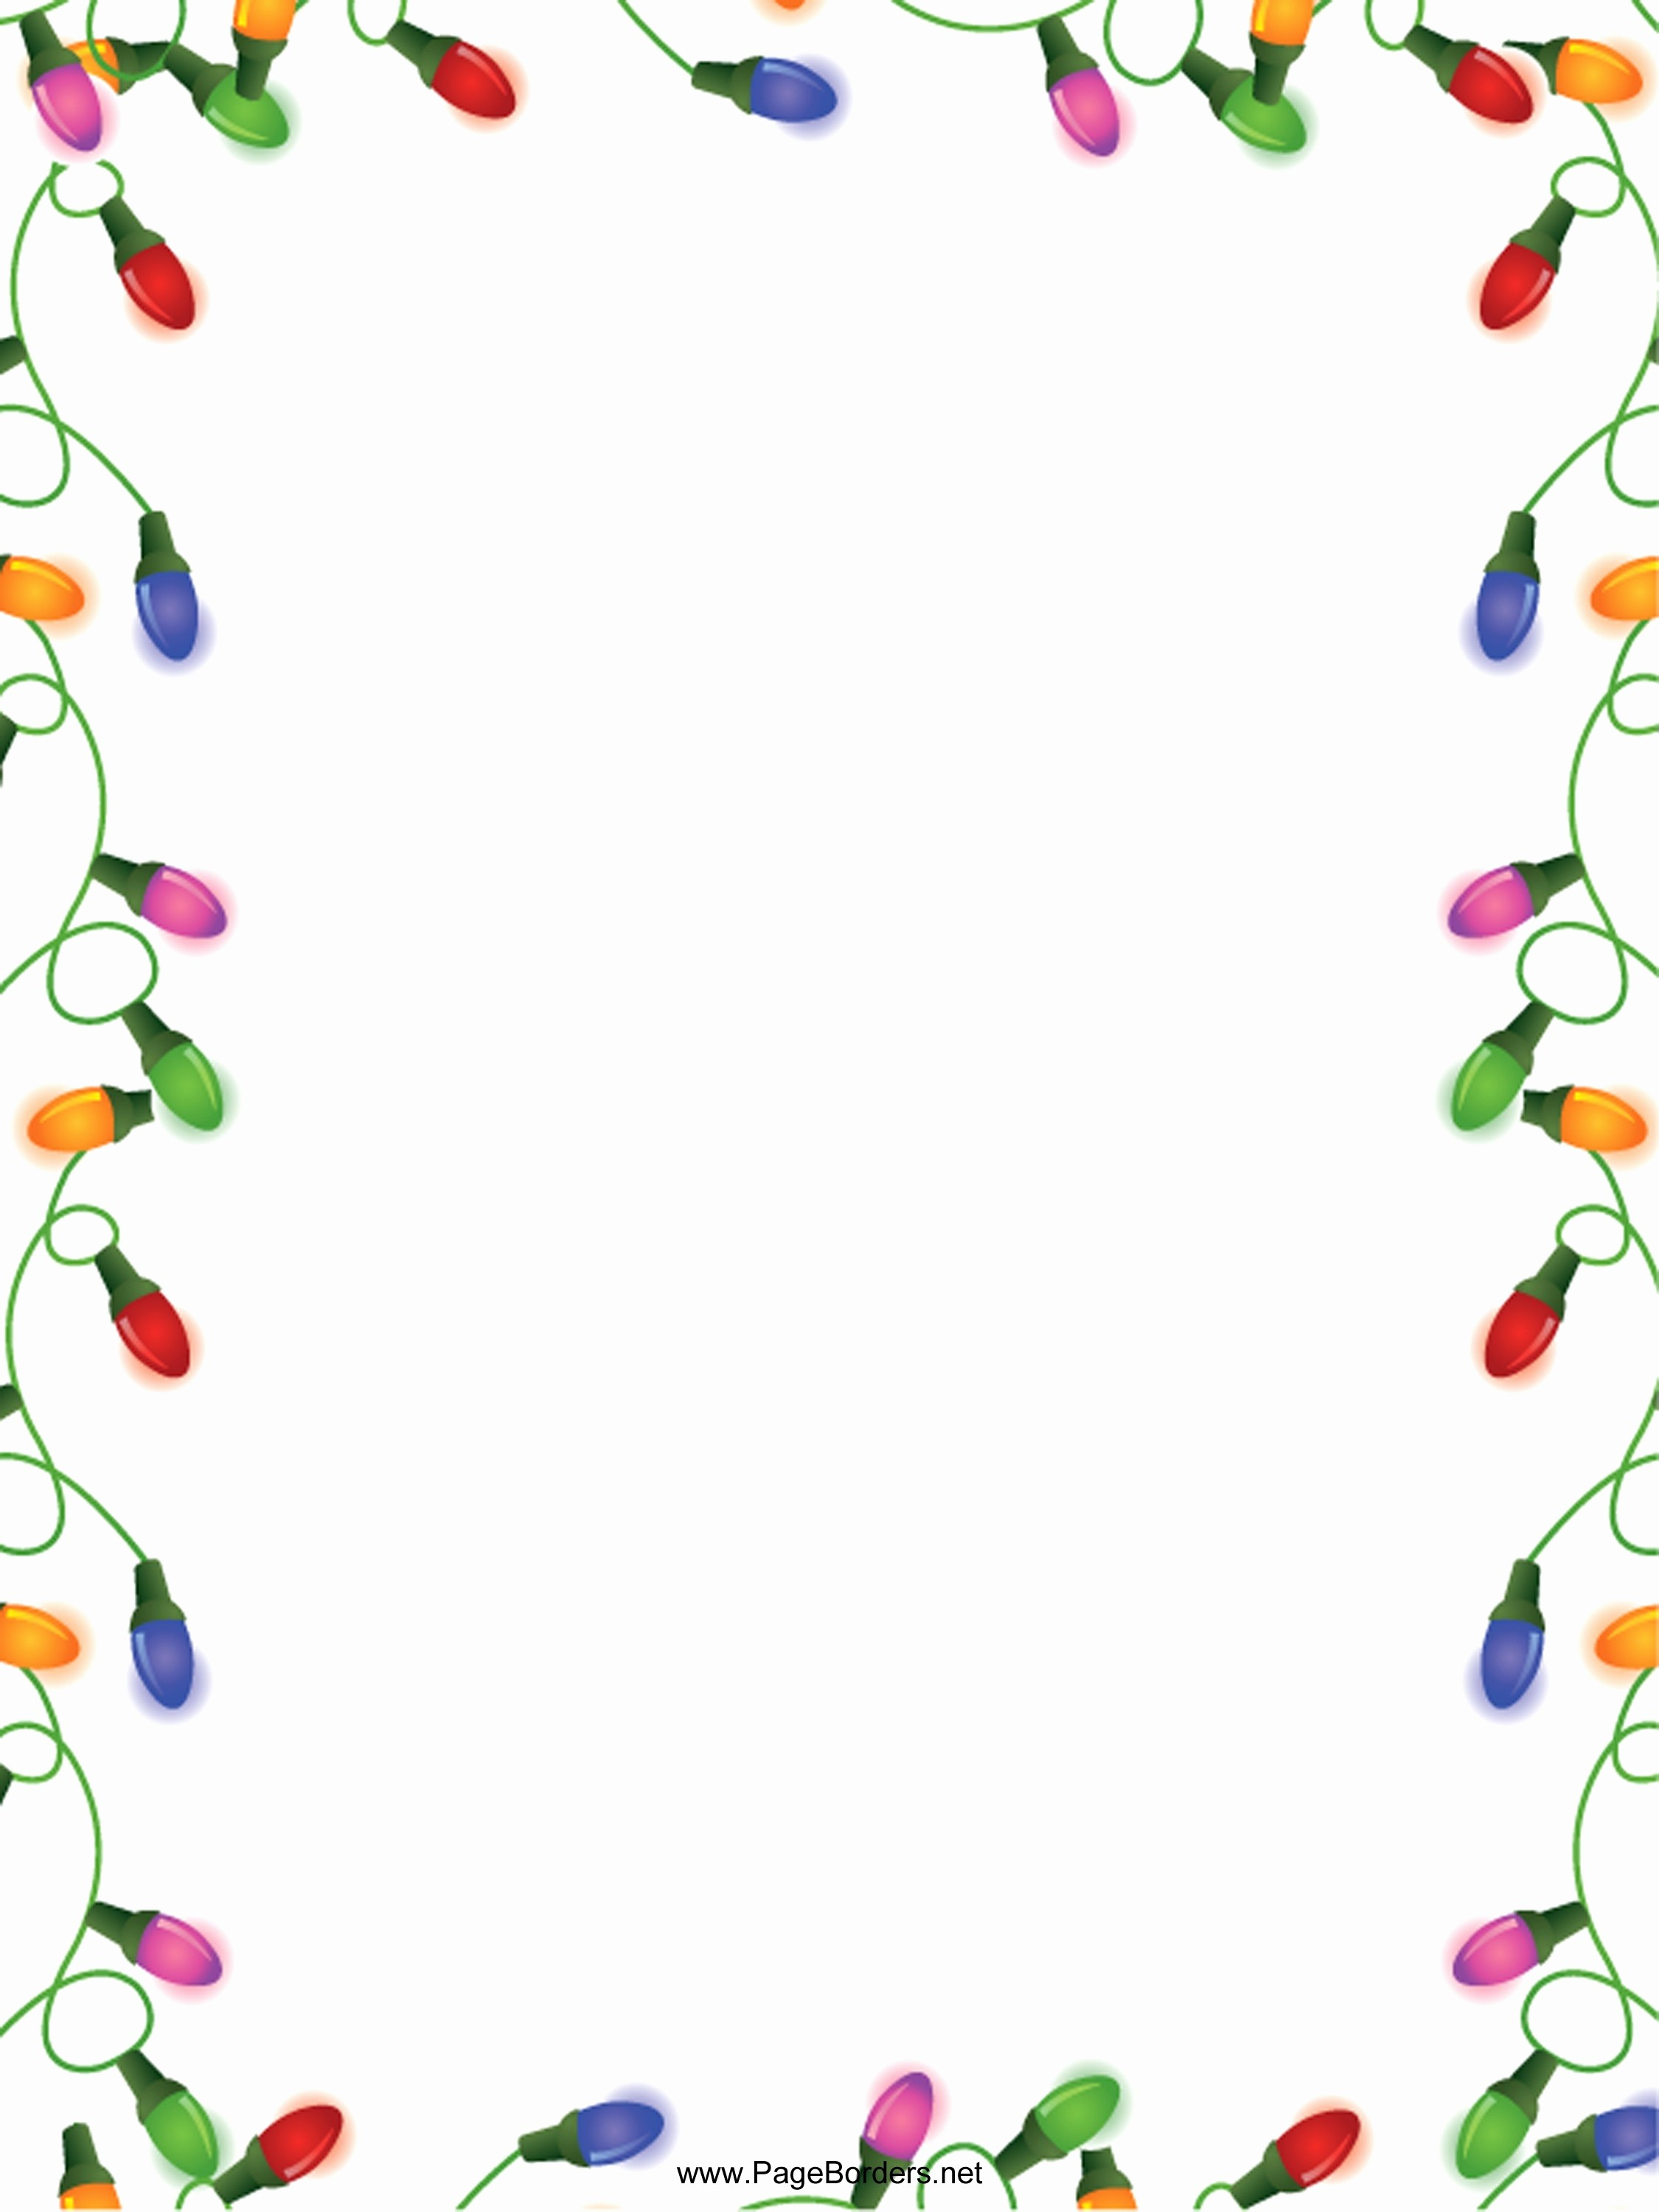 Free Christmas Template for Word Unique Free Holiday Border Templates Microsoft Word